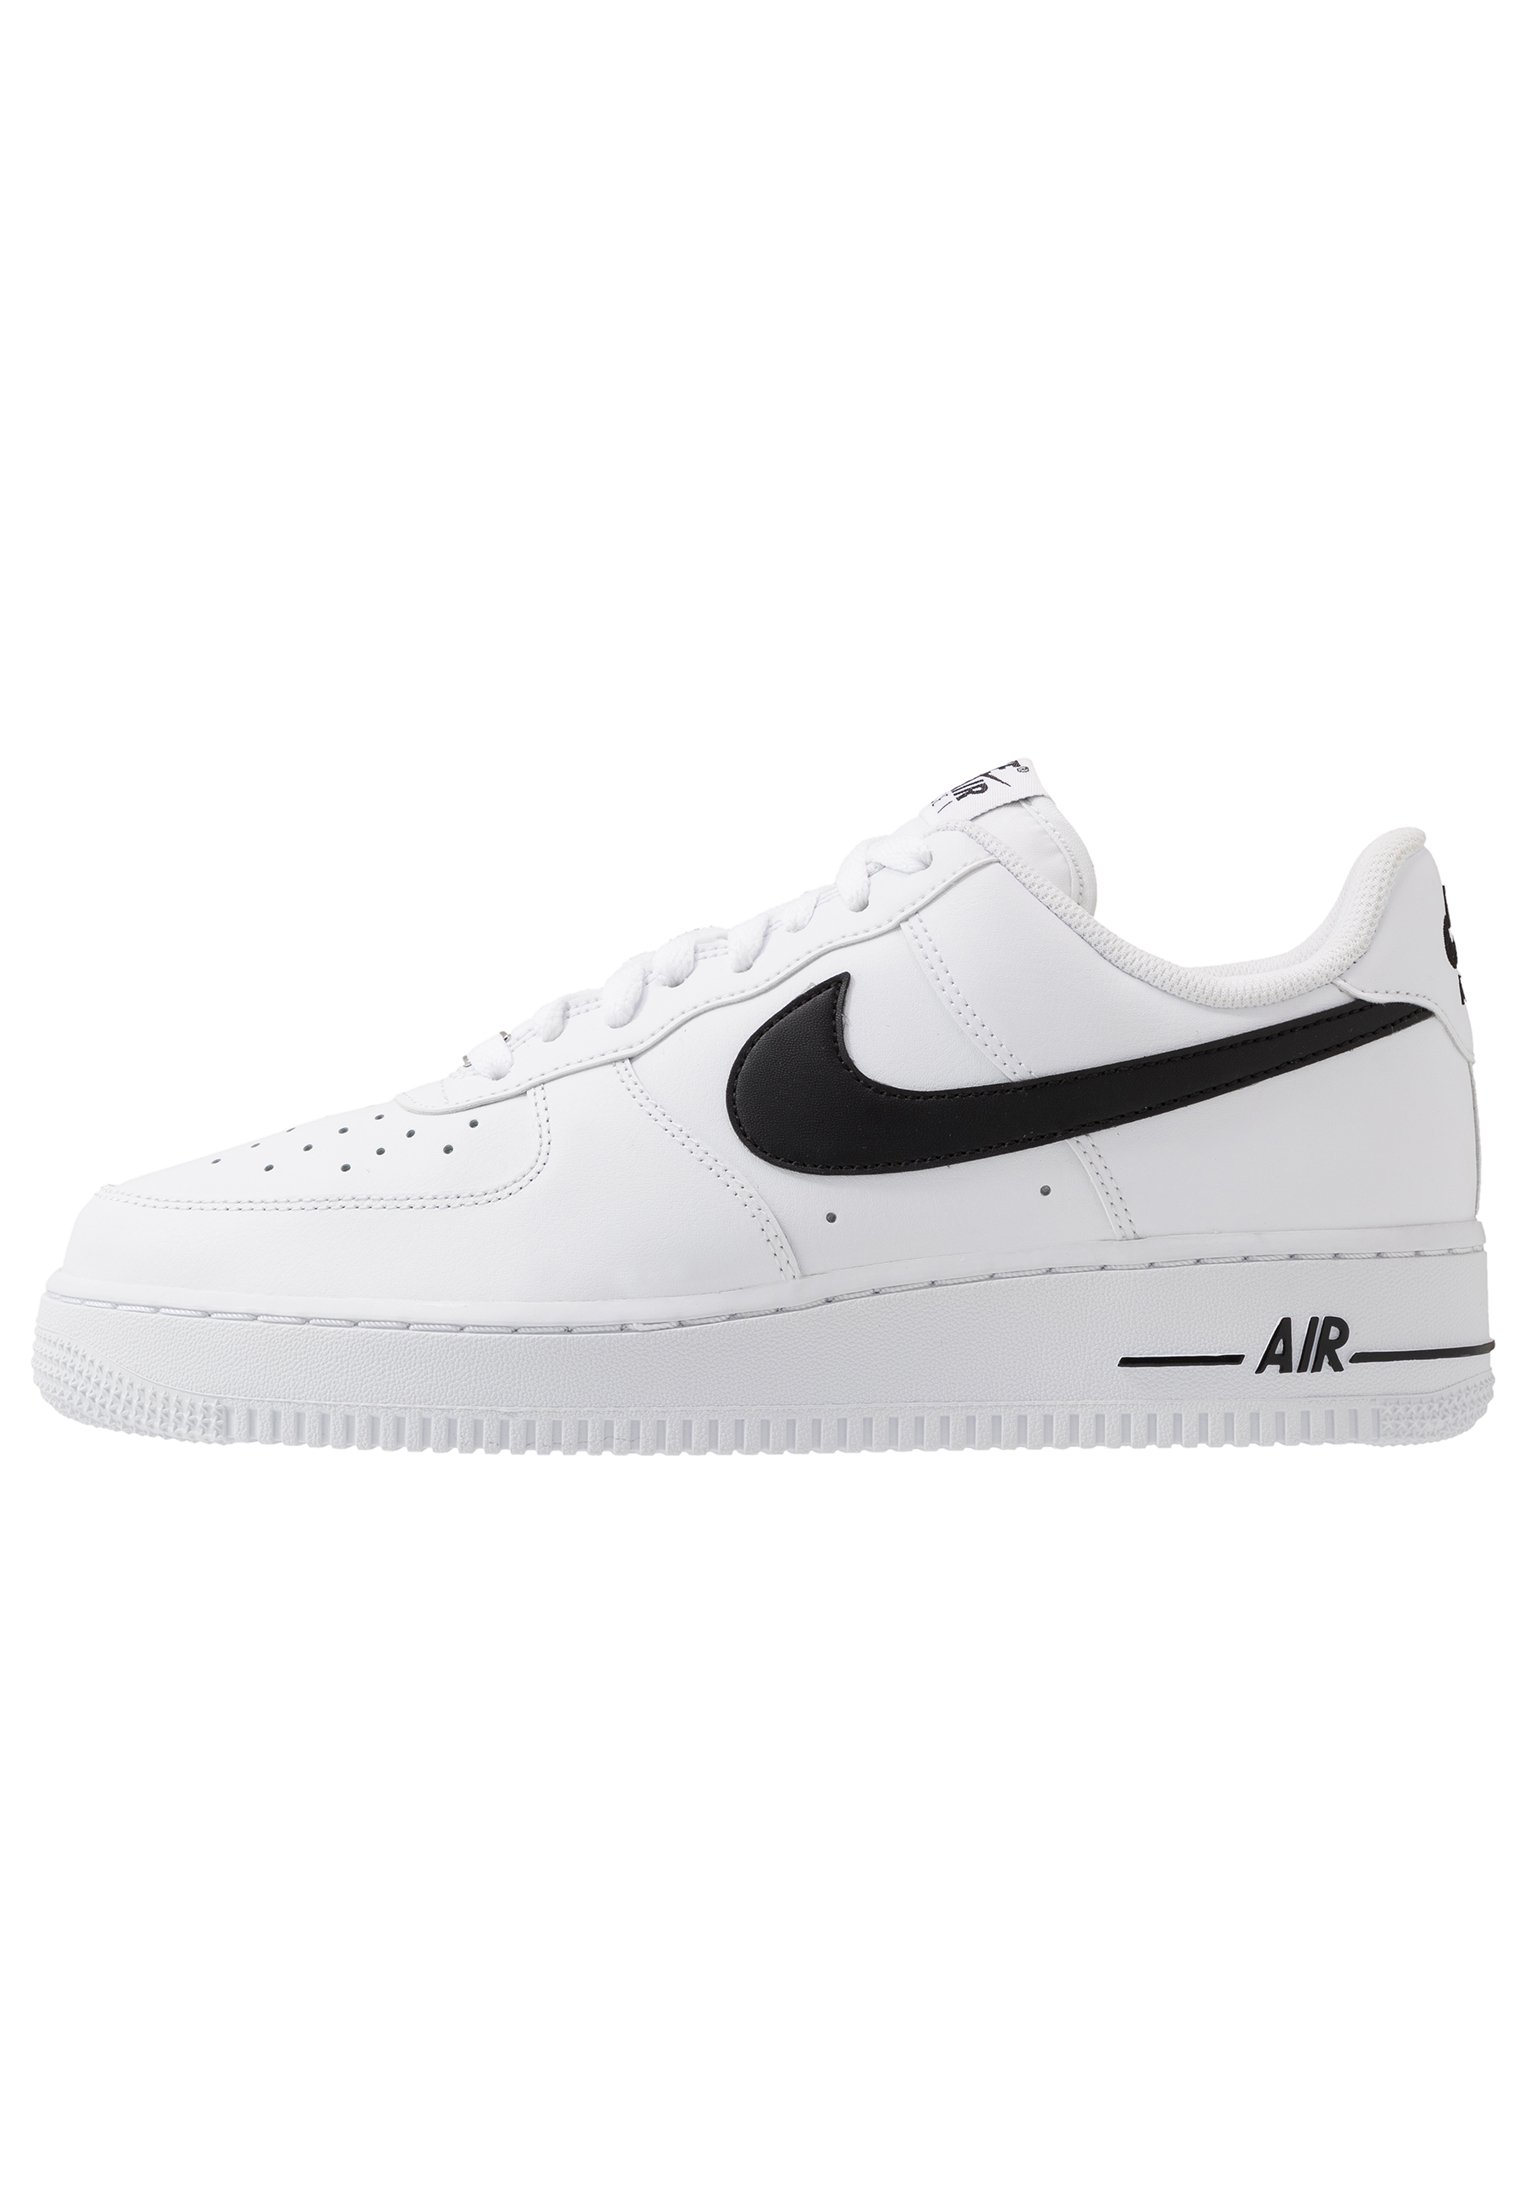 nike air force 1 mid trovaprezzi